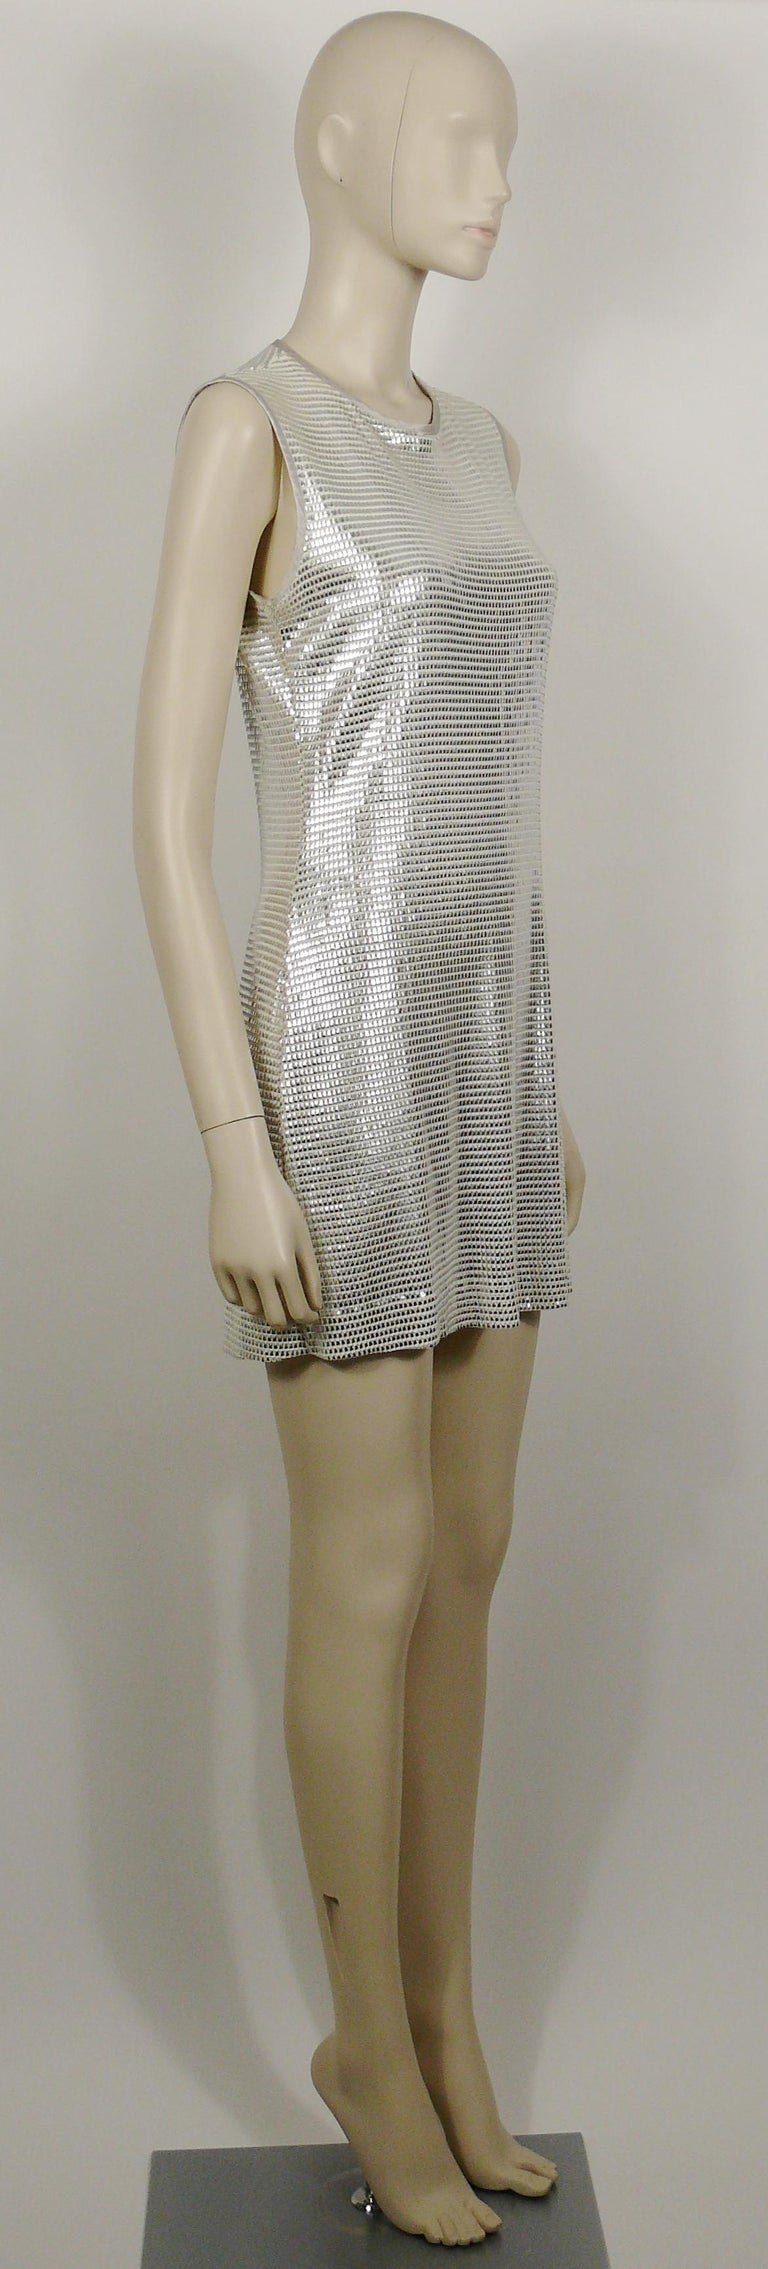 PACO RABANNE white mini dress with silver foil grid.  Top surface is silver foil printed creating a metallic chain mail effect on a white knit spandex base.  Slips on. Hook neck closure. Unlined.  Label reads PACO RABANNE Paris. Made in